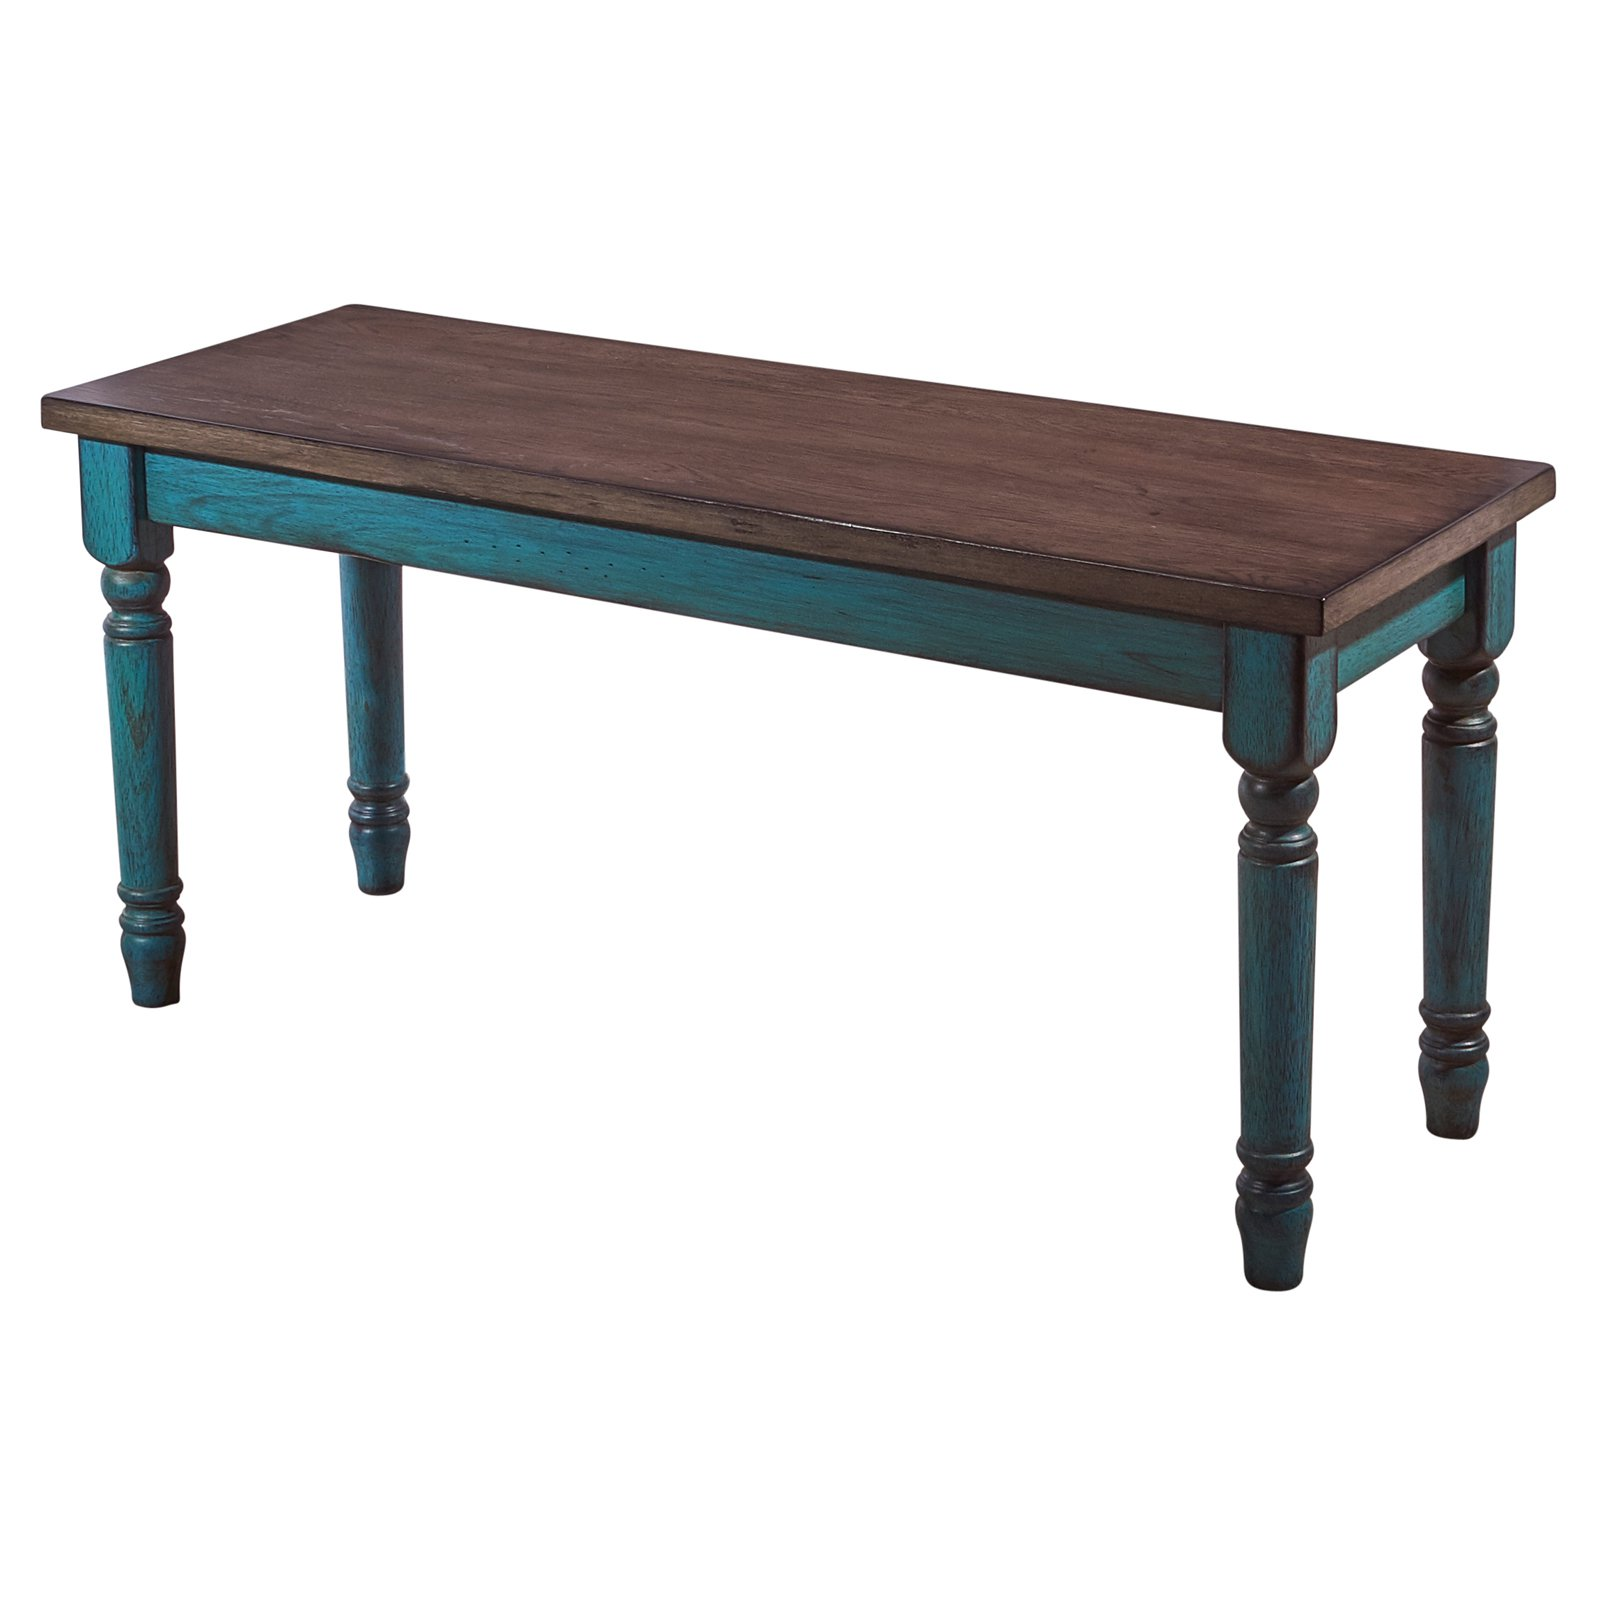 Powell Willow Wood Dining Bench, Distressed Brown And Teal Blue